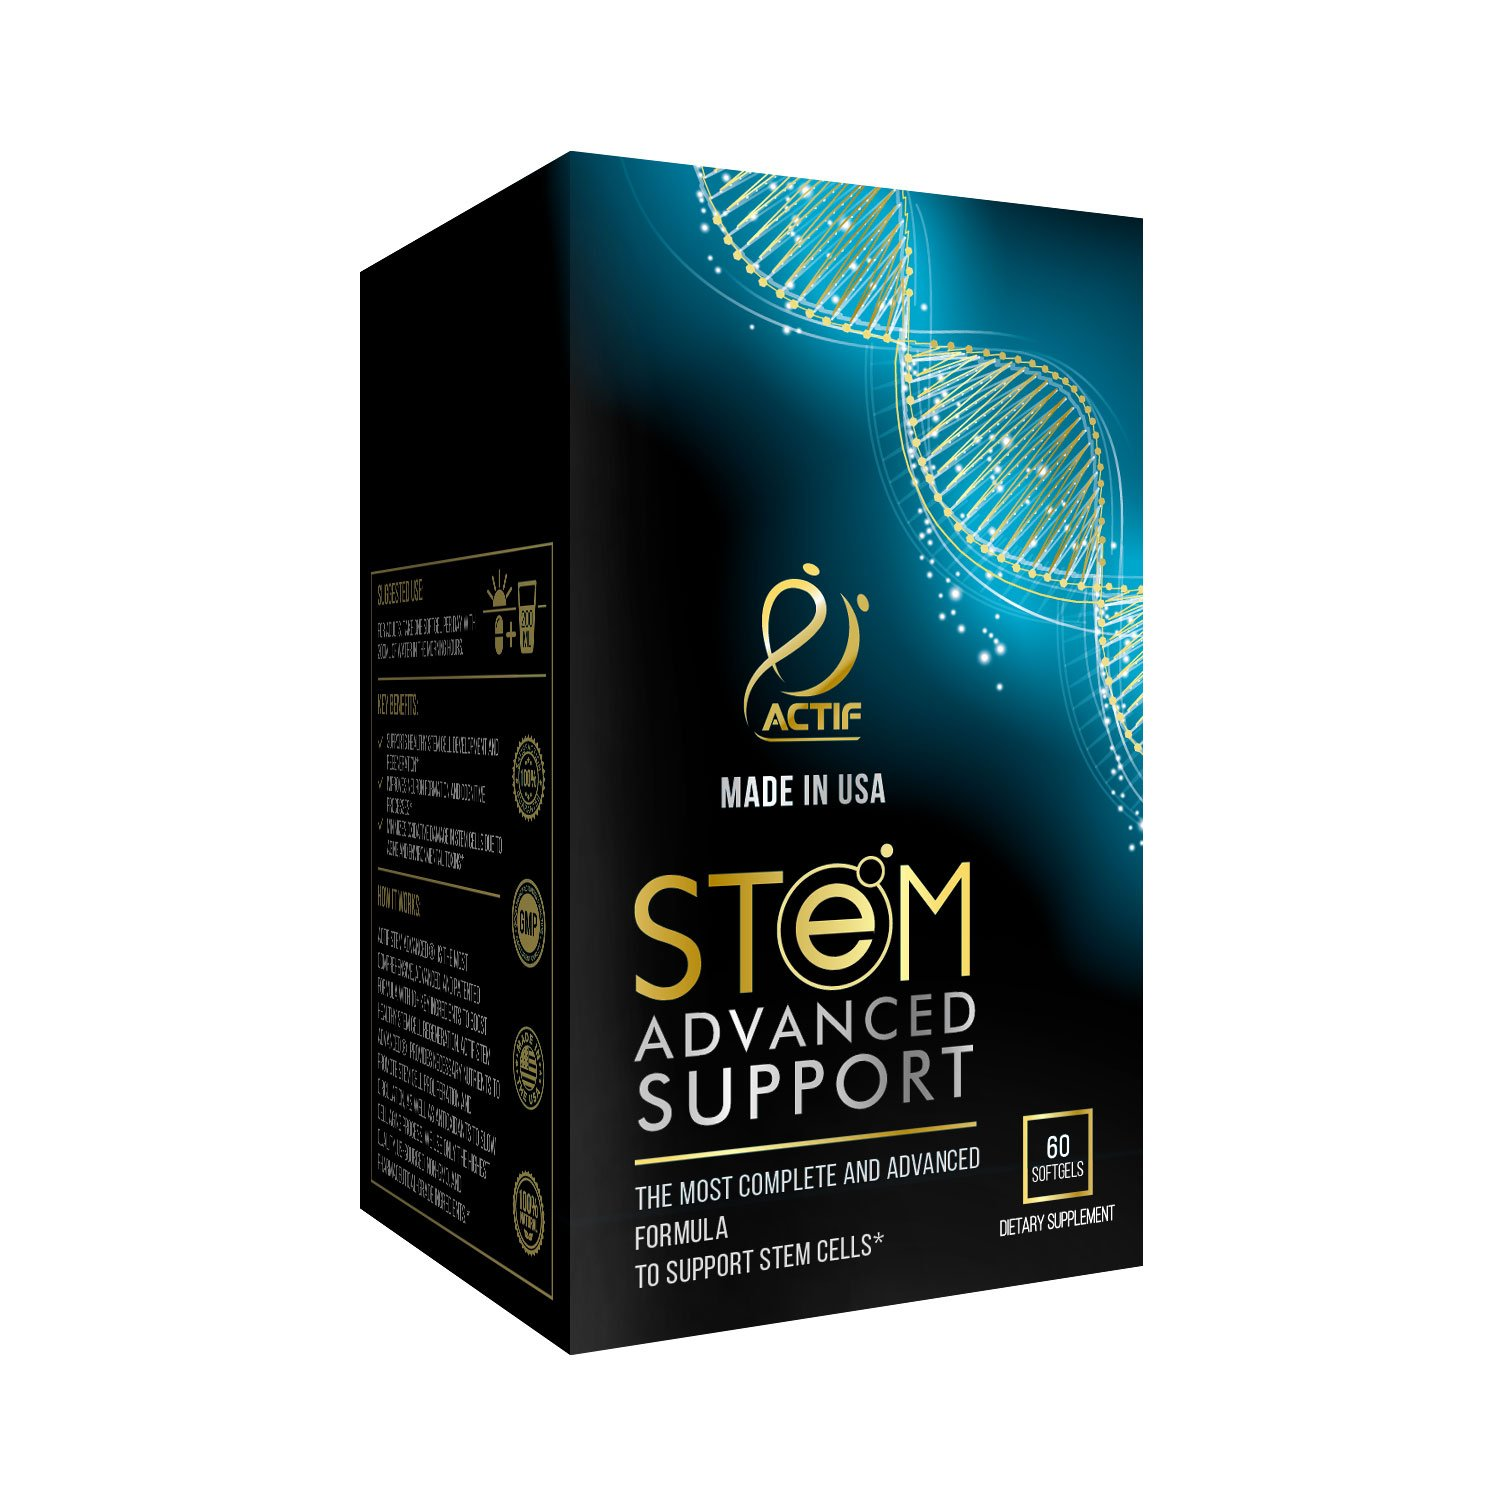 ACTIF STEM Cell Support – Maximum Strength with 10 Stem Cell Factors, Non GMO, 2 Month Supply, Made in USA